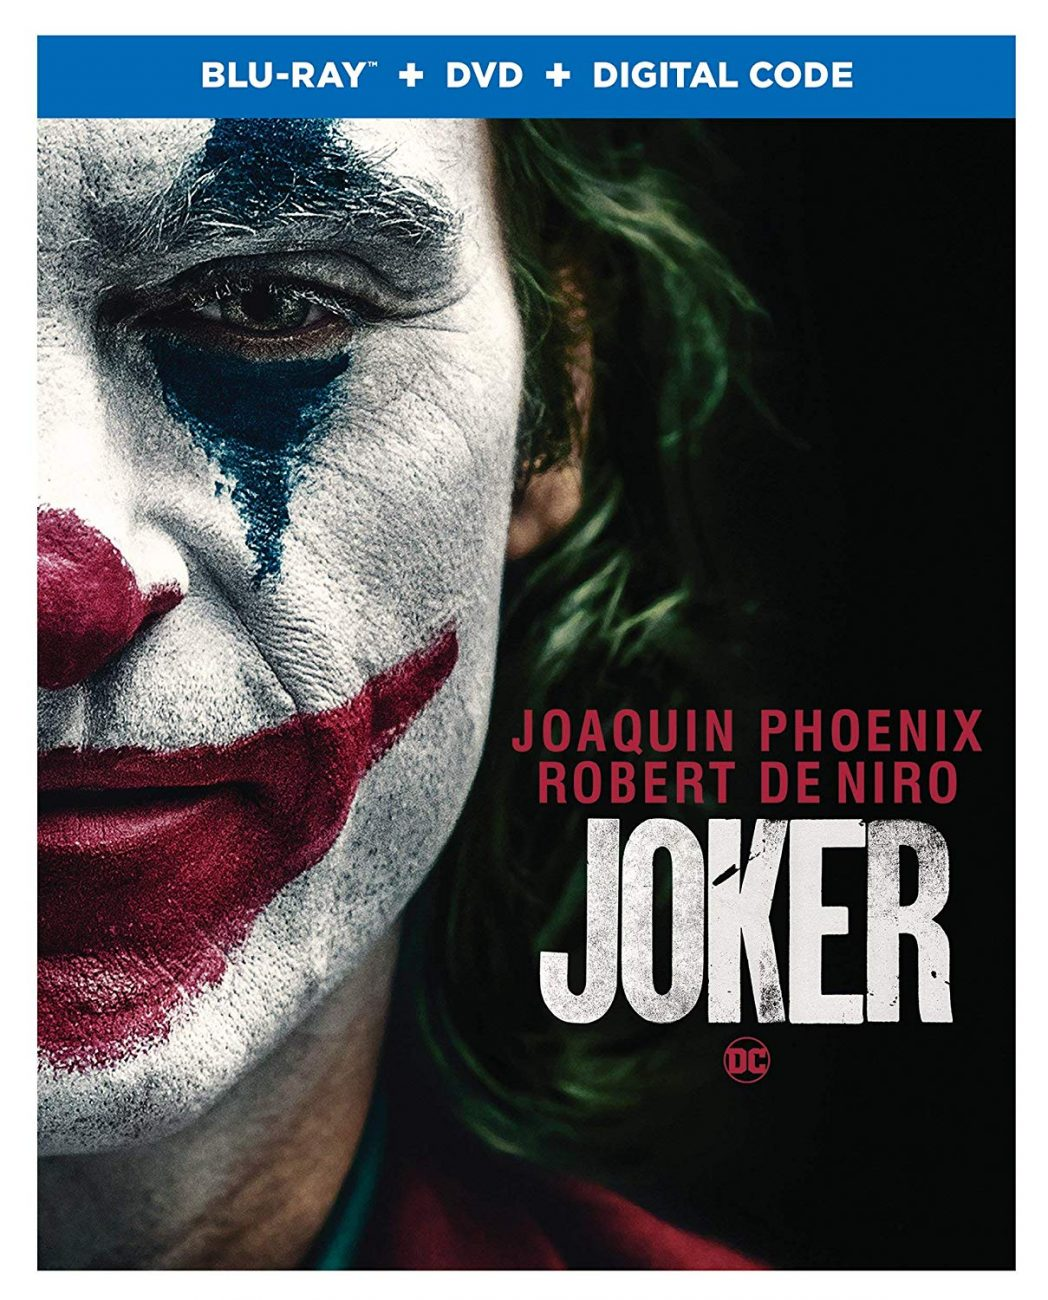 The Joker Now Available on DVD, 4K UHD Combo, Blu-Ray and more!